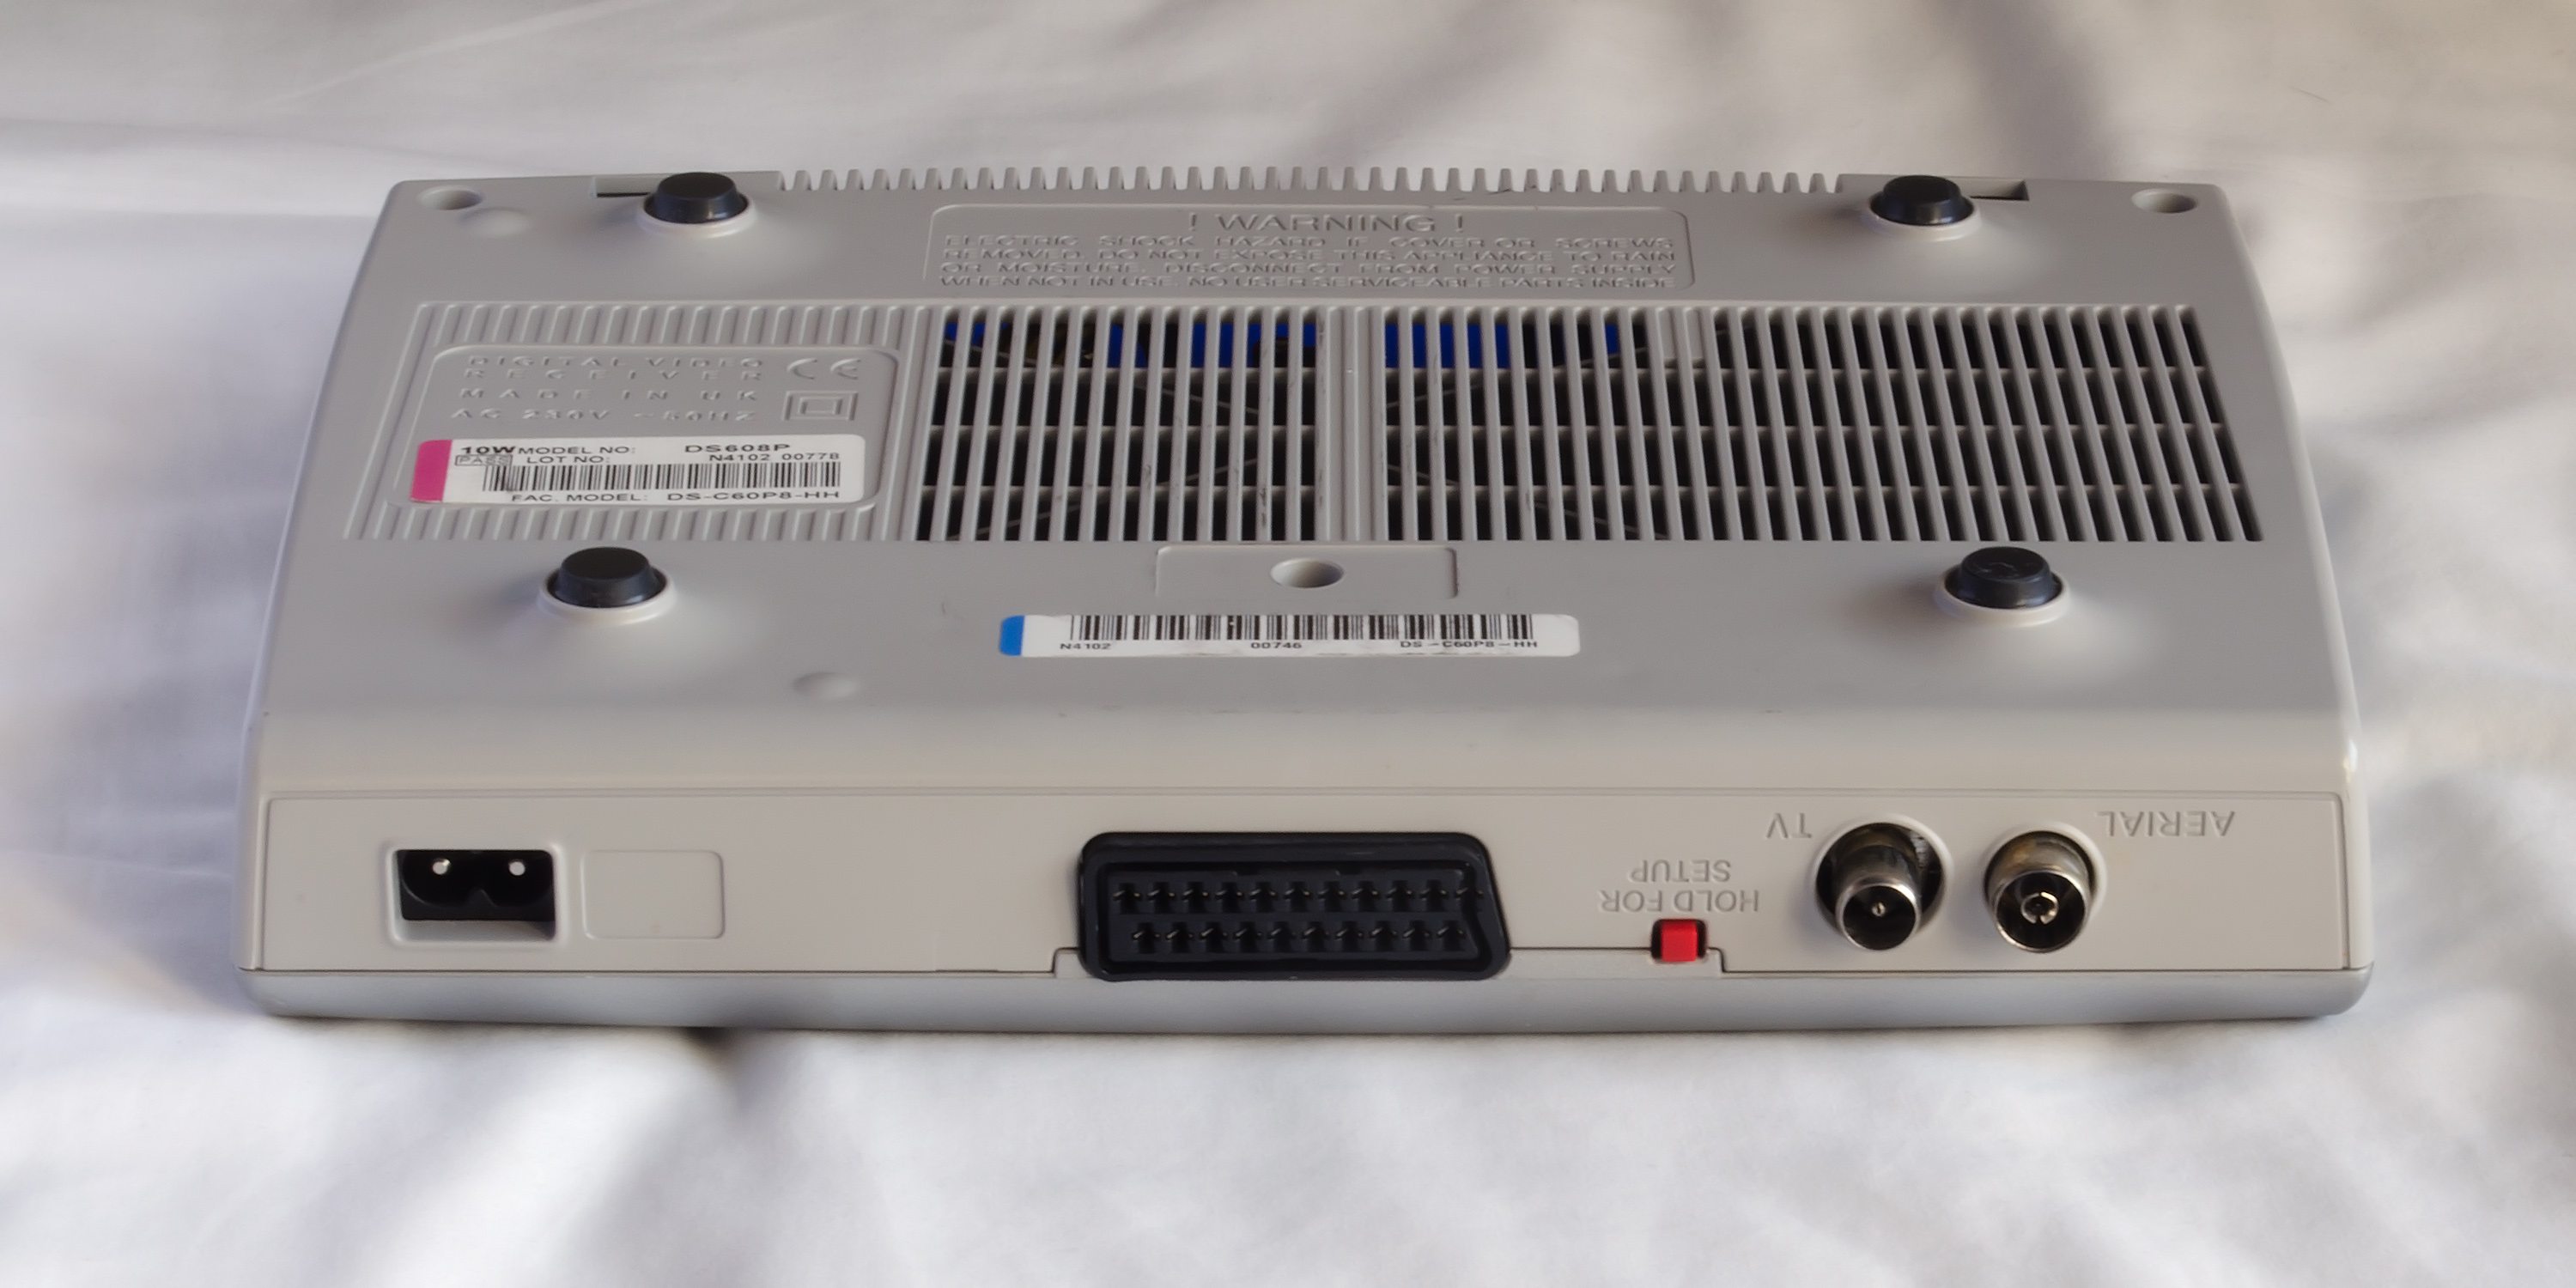 File:Daewoo DS608P Freeview DVB-T set top box (underside and rear)